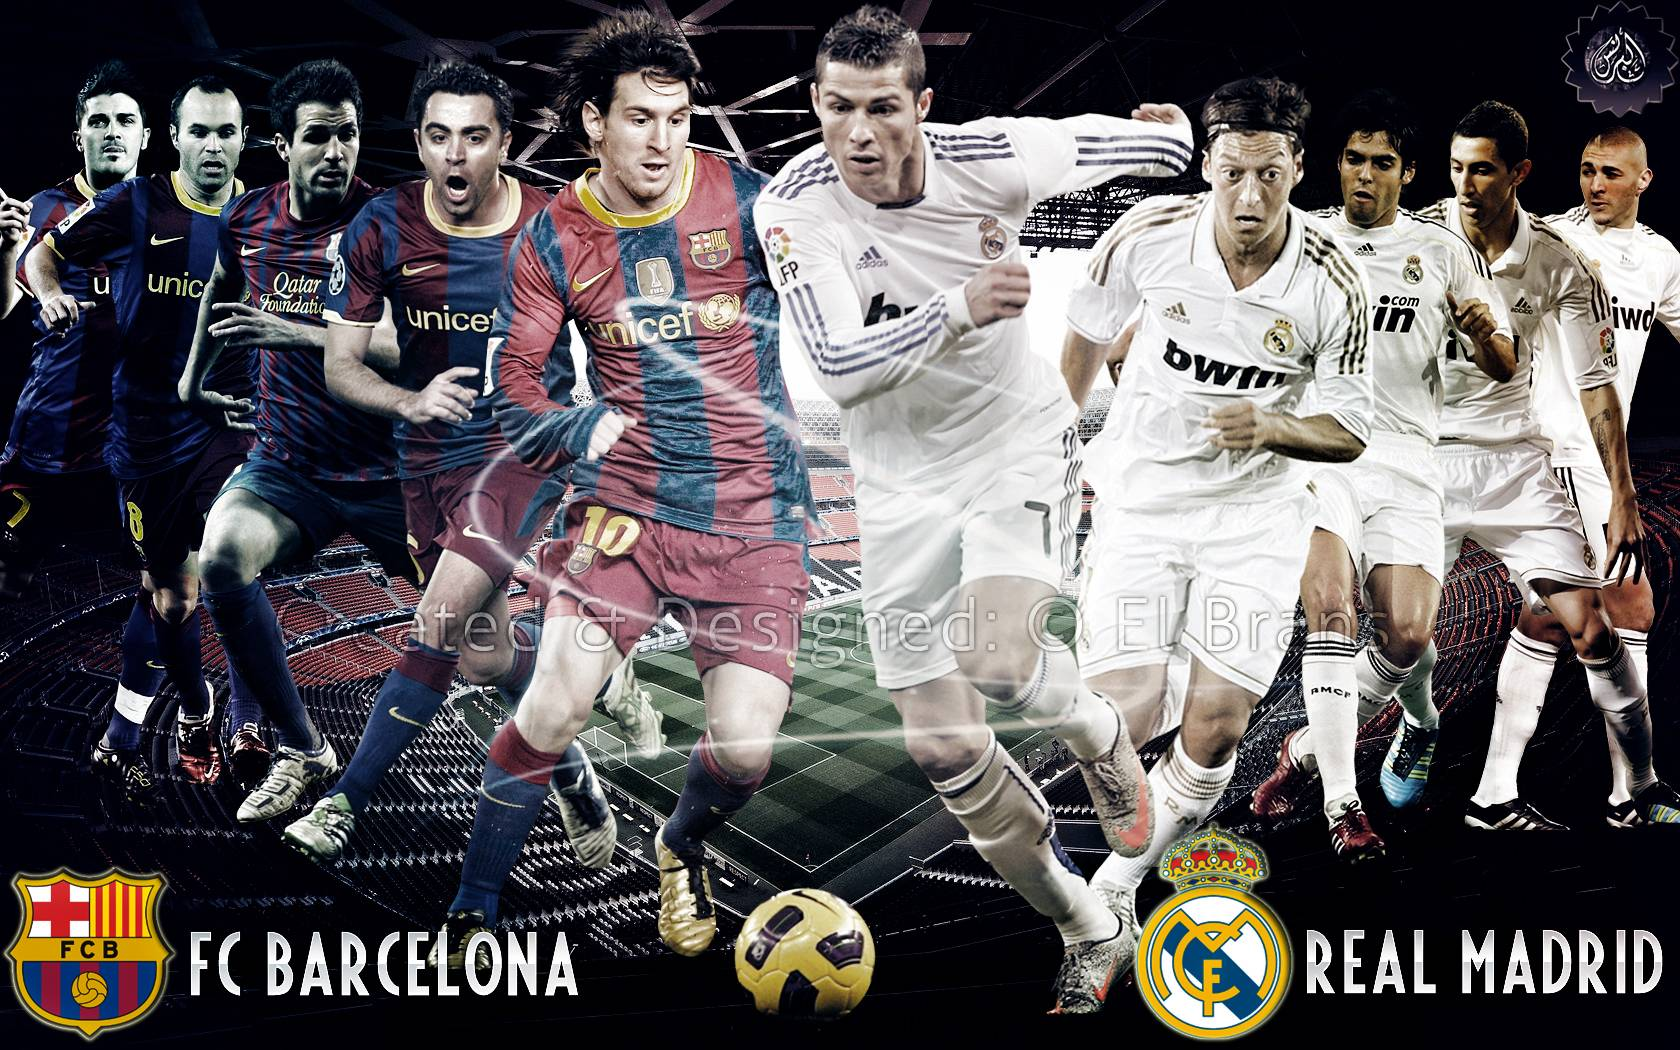 Real Madrid Vs Barcelona Wallpapers 1680x1050